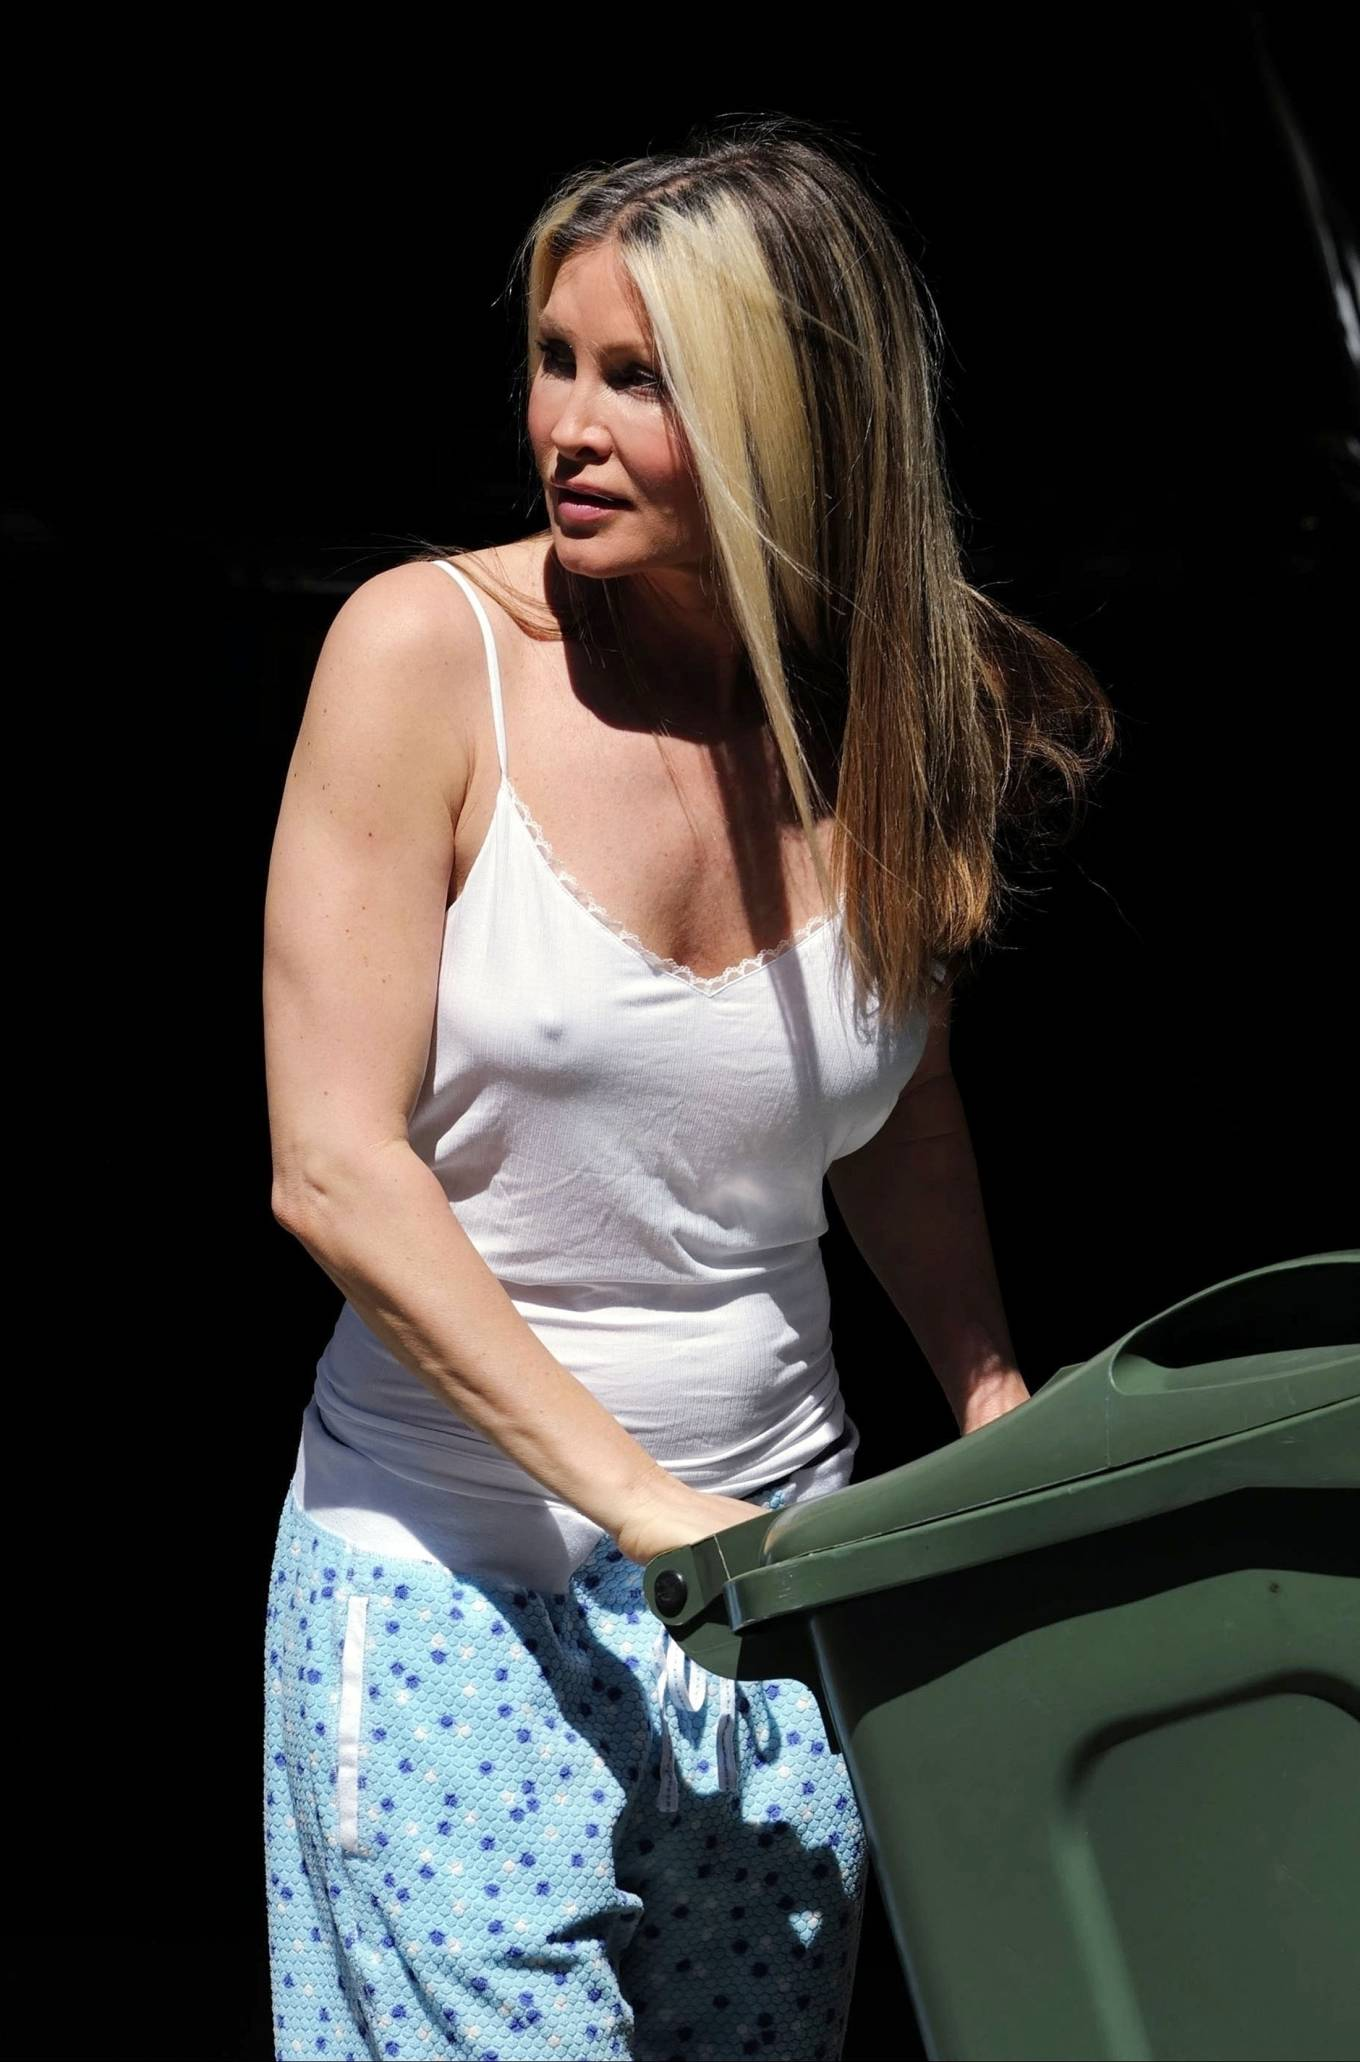 Caprice Bourret - Taking the bins out in London